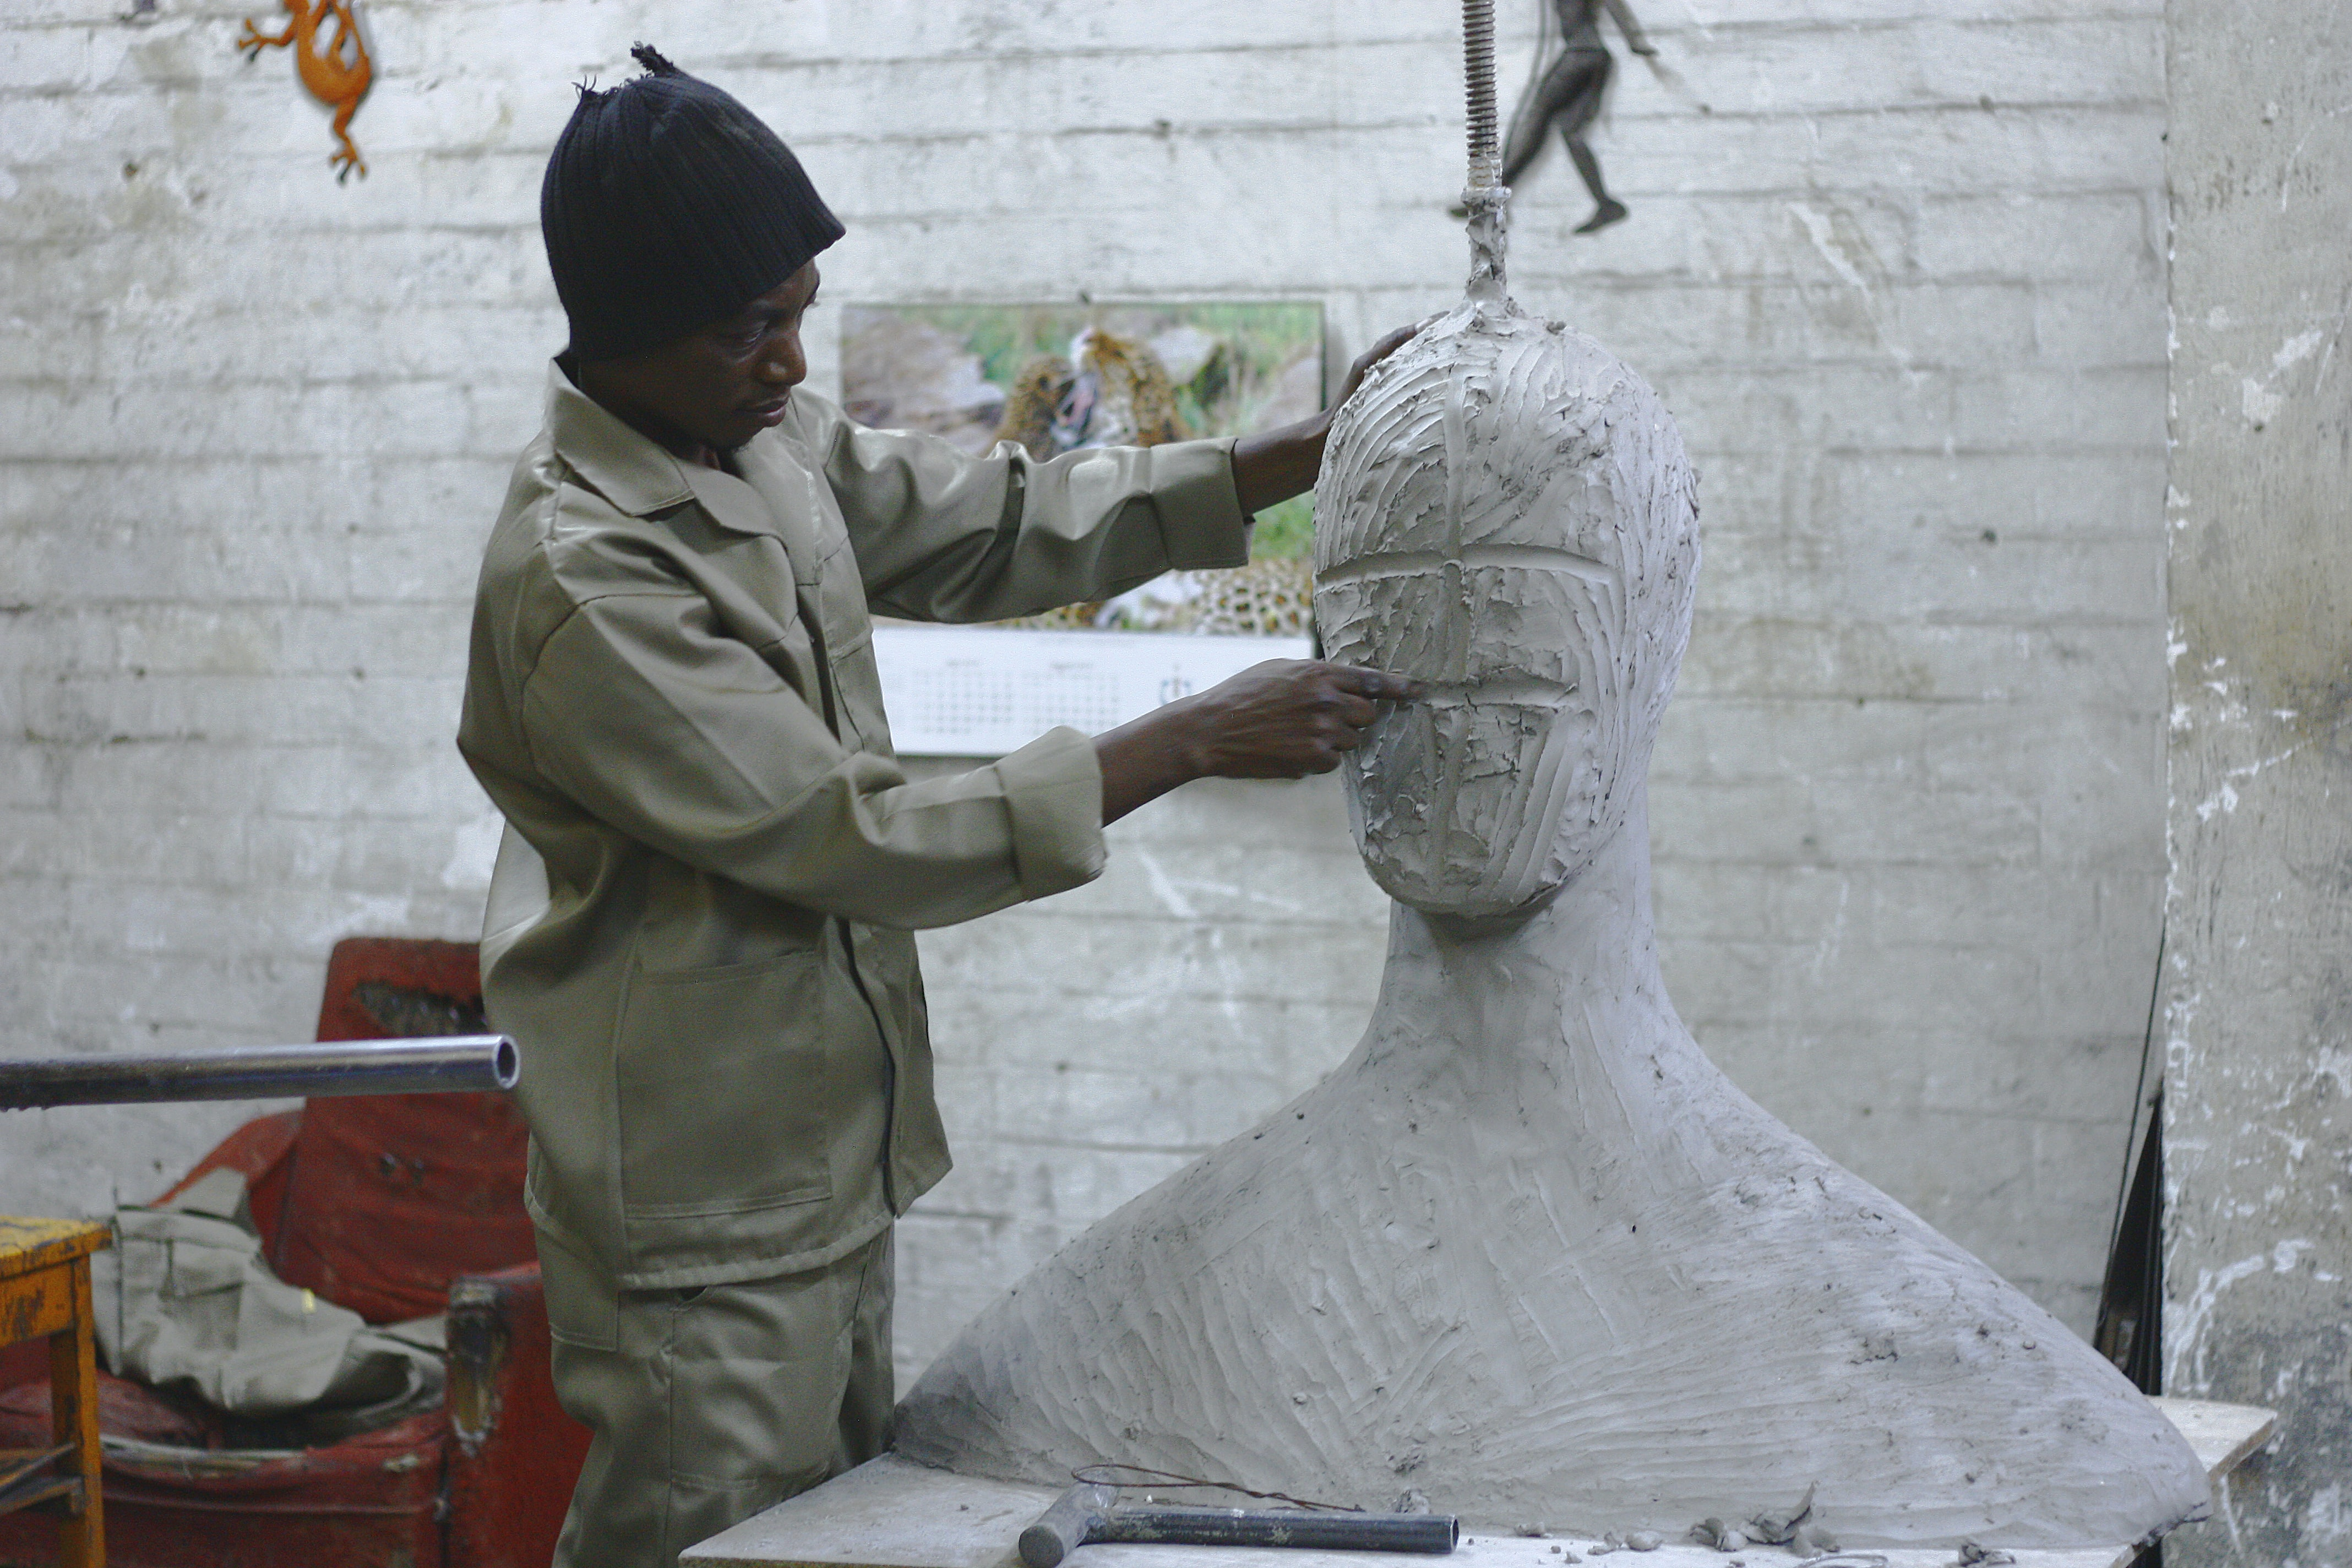 A sculptor works in his studio sculpting a large white body and head